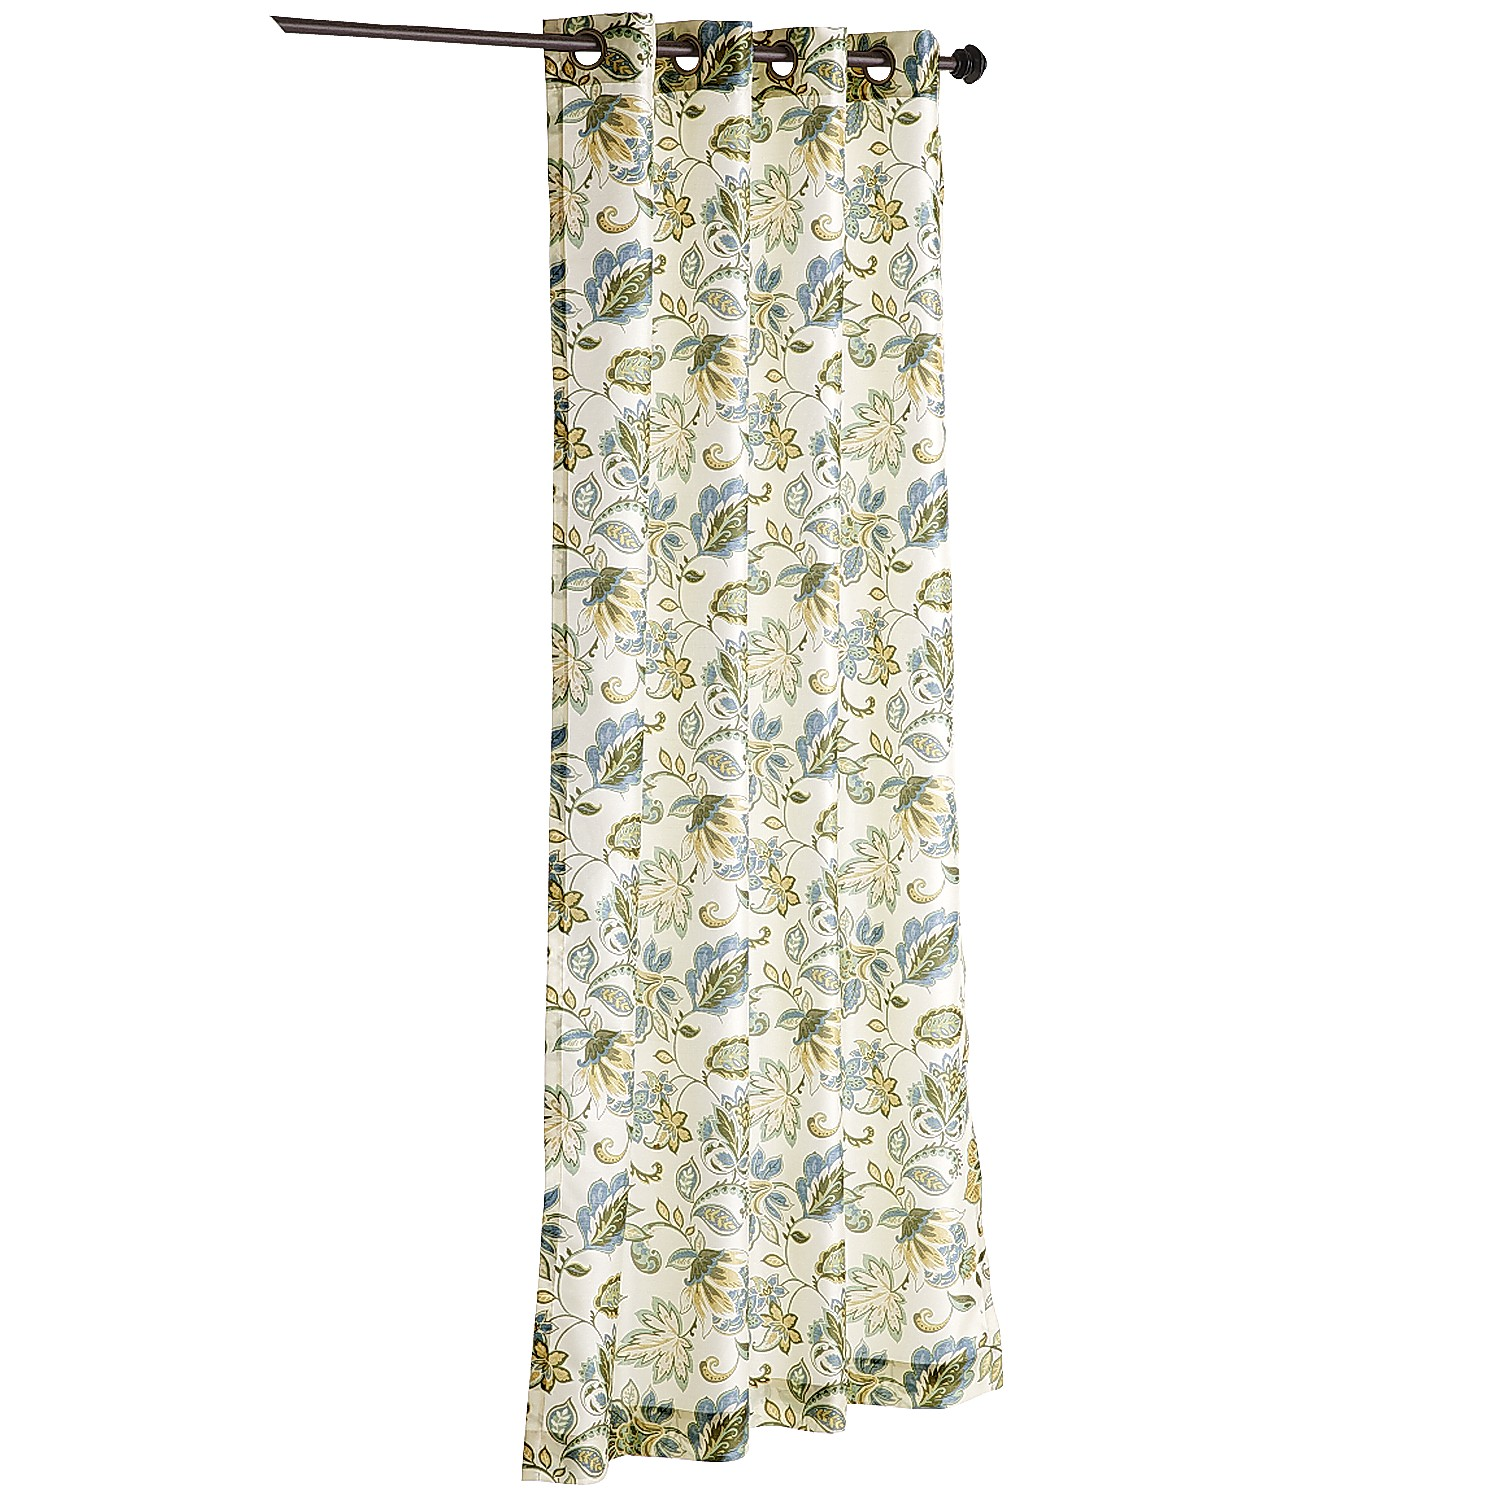 "variation thumbnail of Glencove Floral Blue 120"" Grommet Curtain"